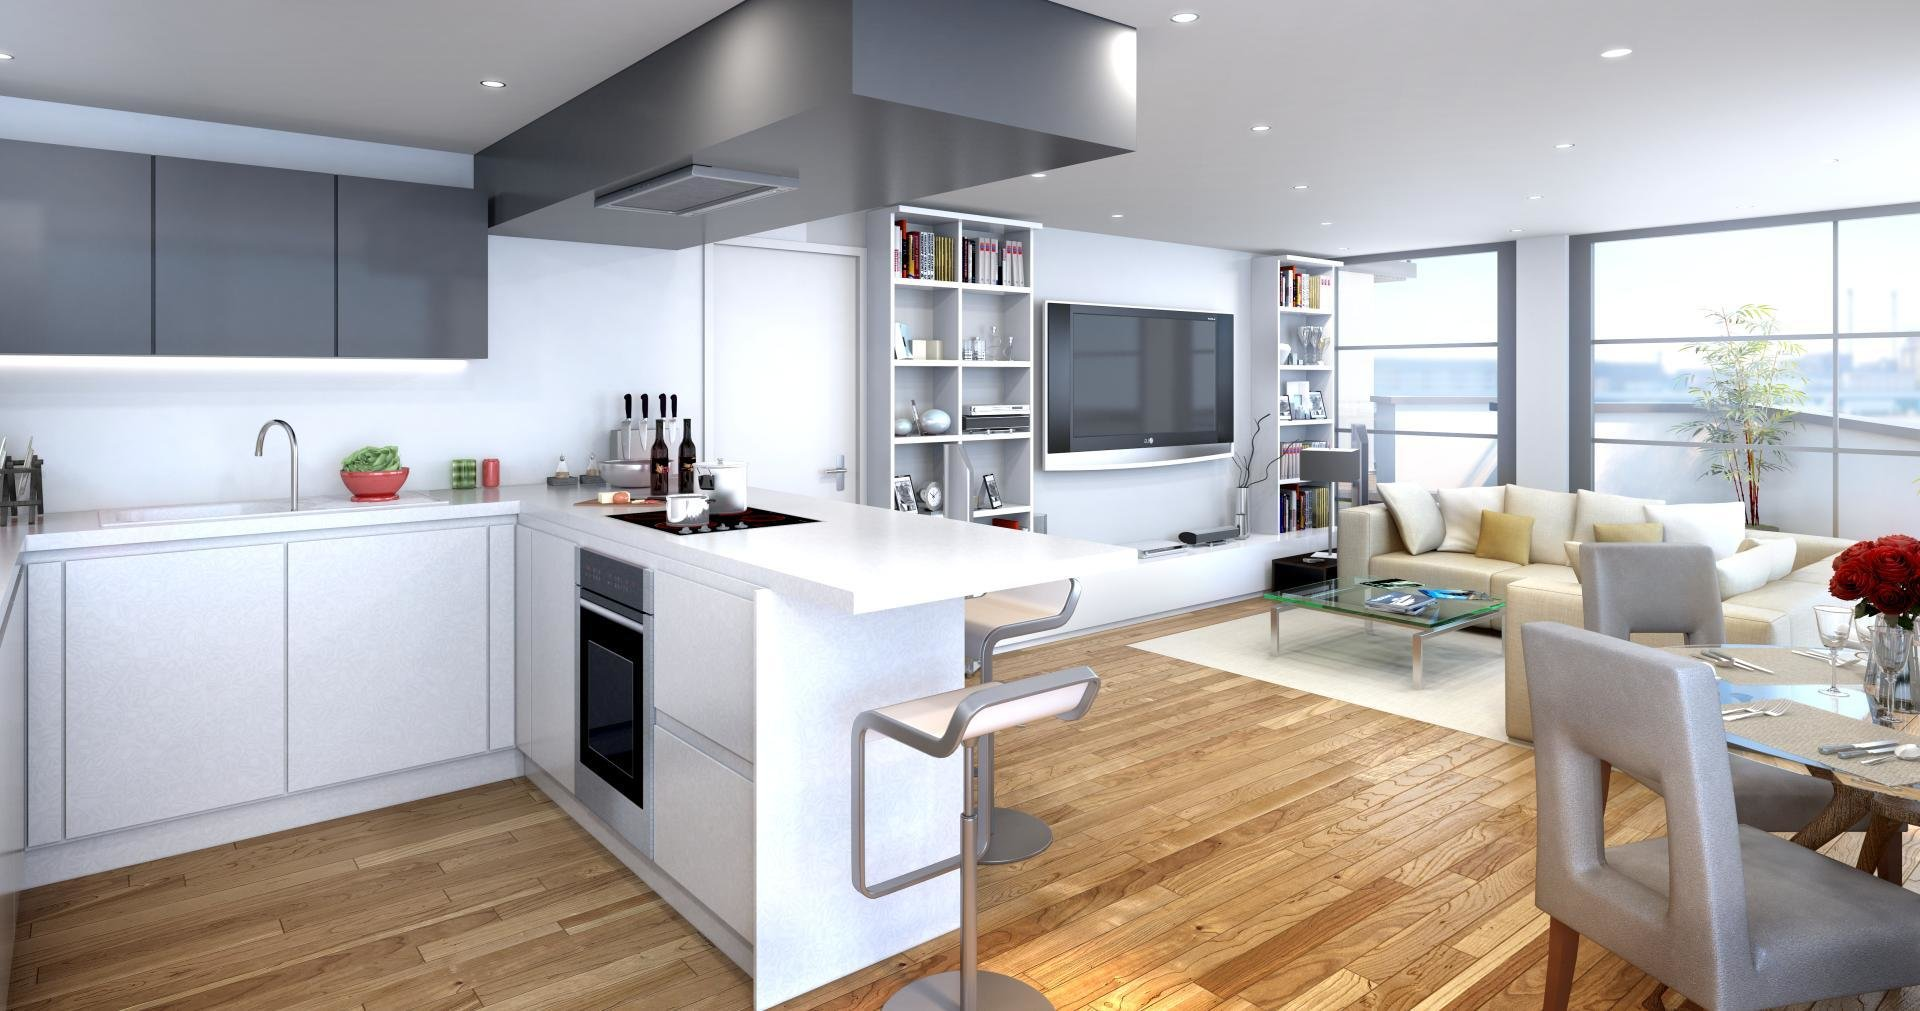 Best 2 Bedroom Apartment For Sale In Pilgrimage Street Borough With Pictures Original 1024 x 768